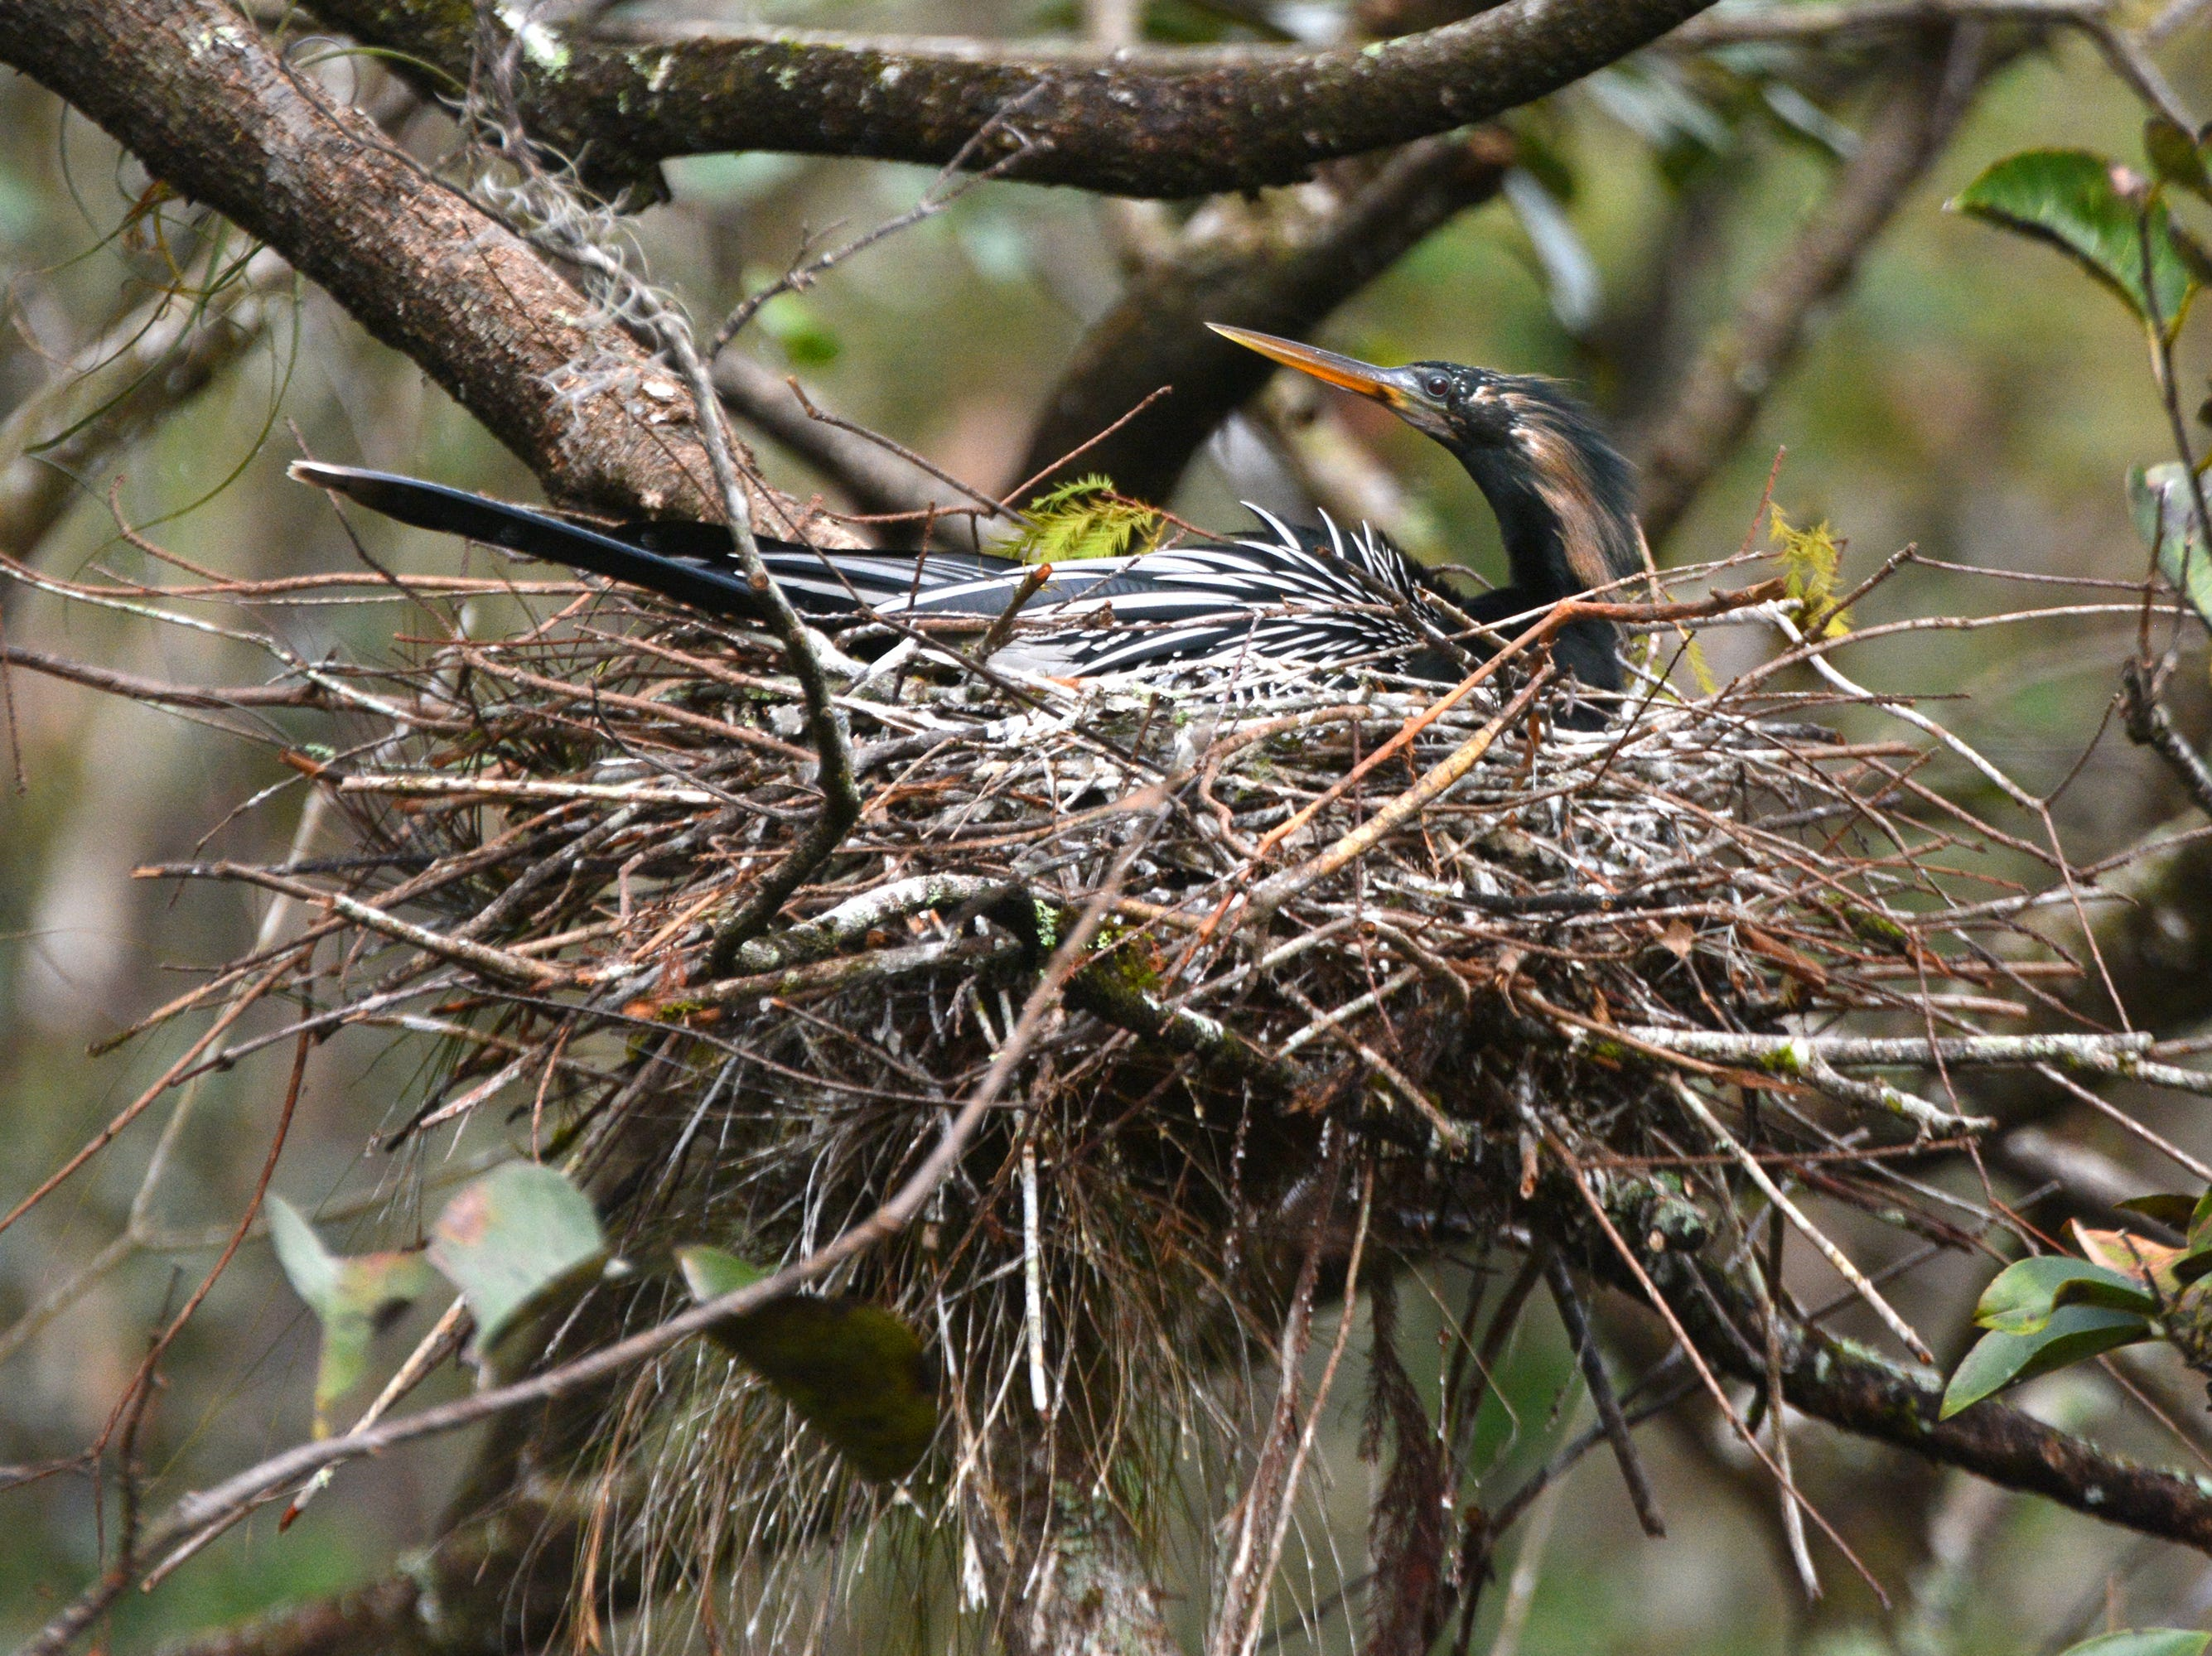 """A male anhinga sits in its nest near the boardwalk at Corkscrew Swamp Sanctuary. An """"early bird"""" birdwatching walk is just one of many ways to experience the natural beauty of Corkscrew Swamp."""